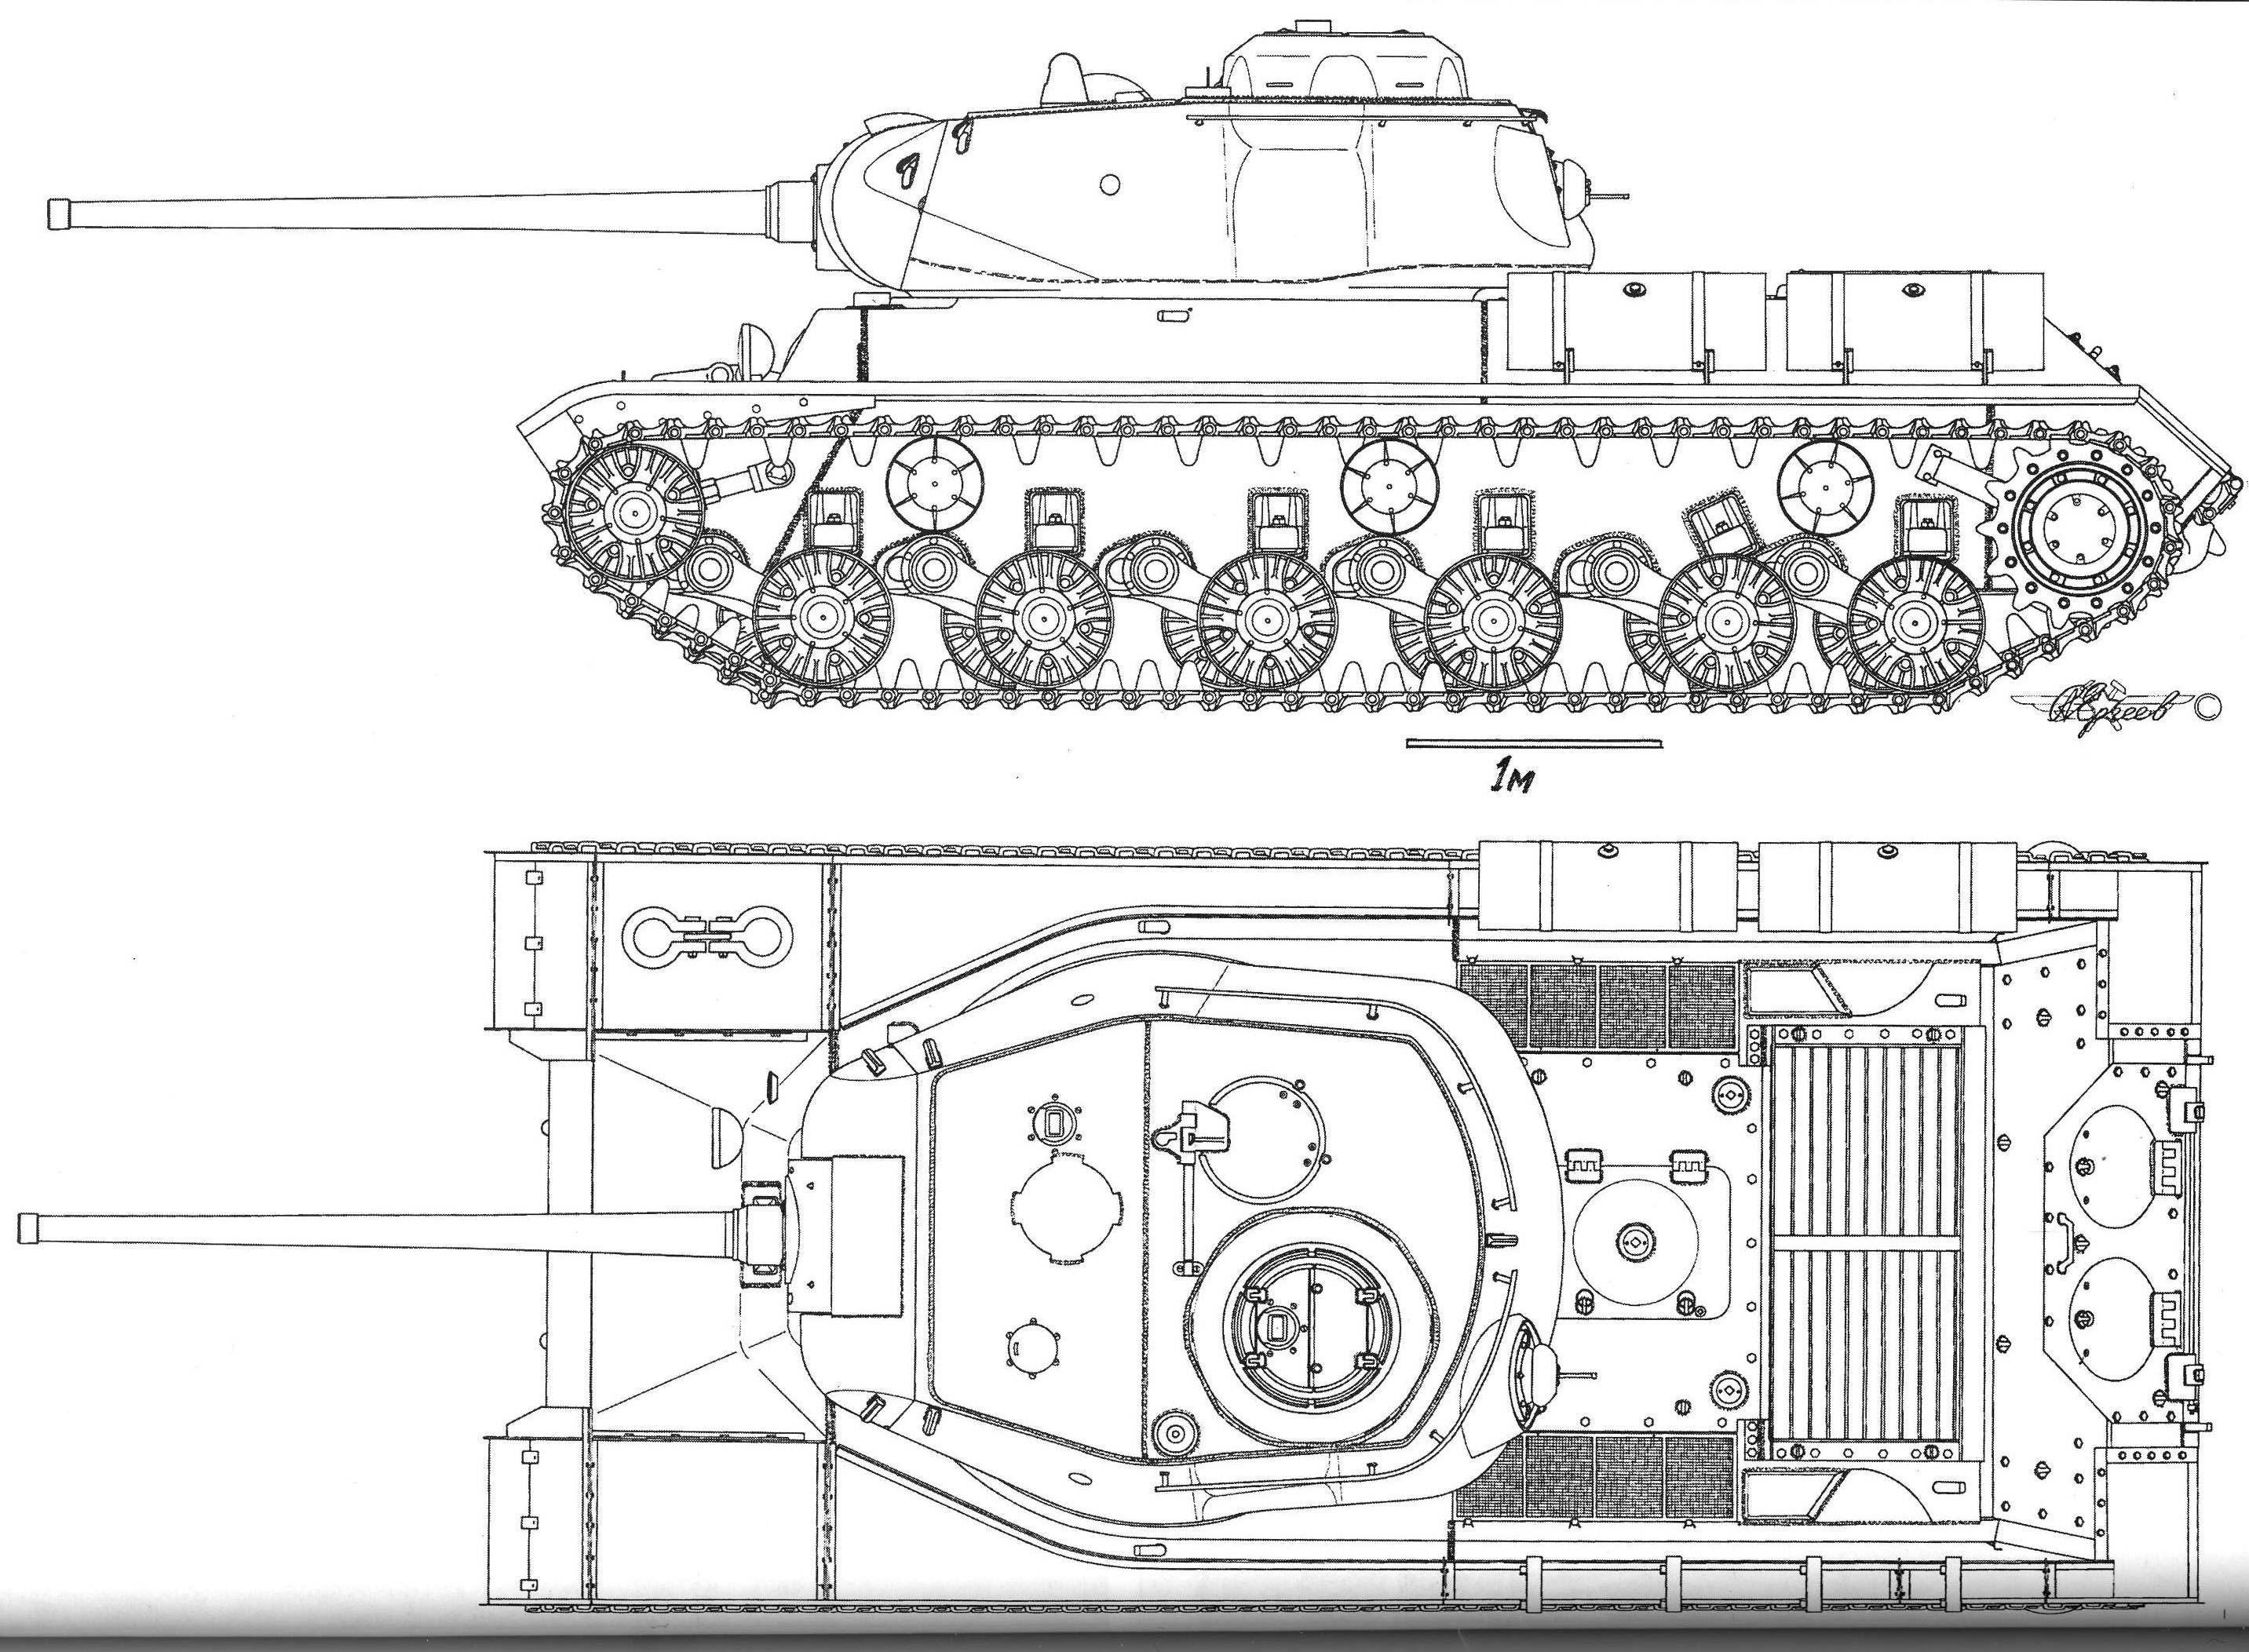 IS-1 (IS-85). Blueprints